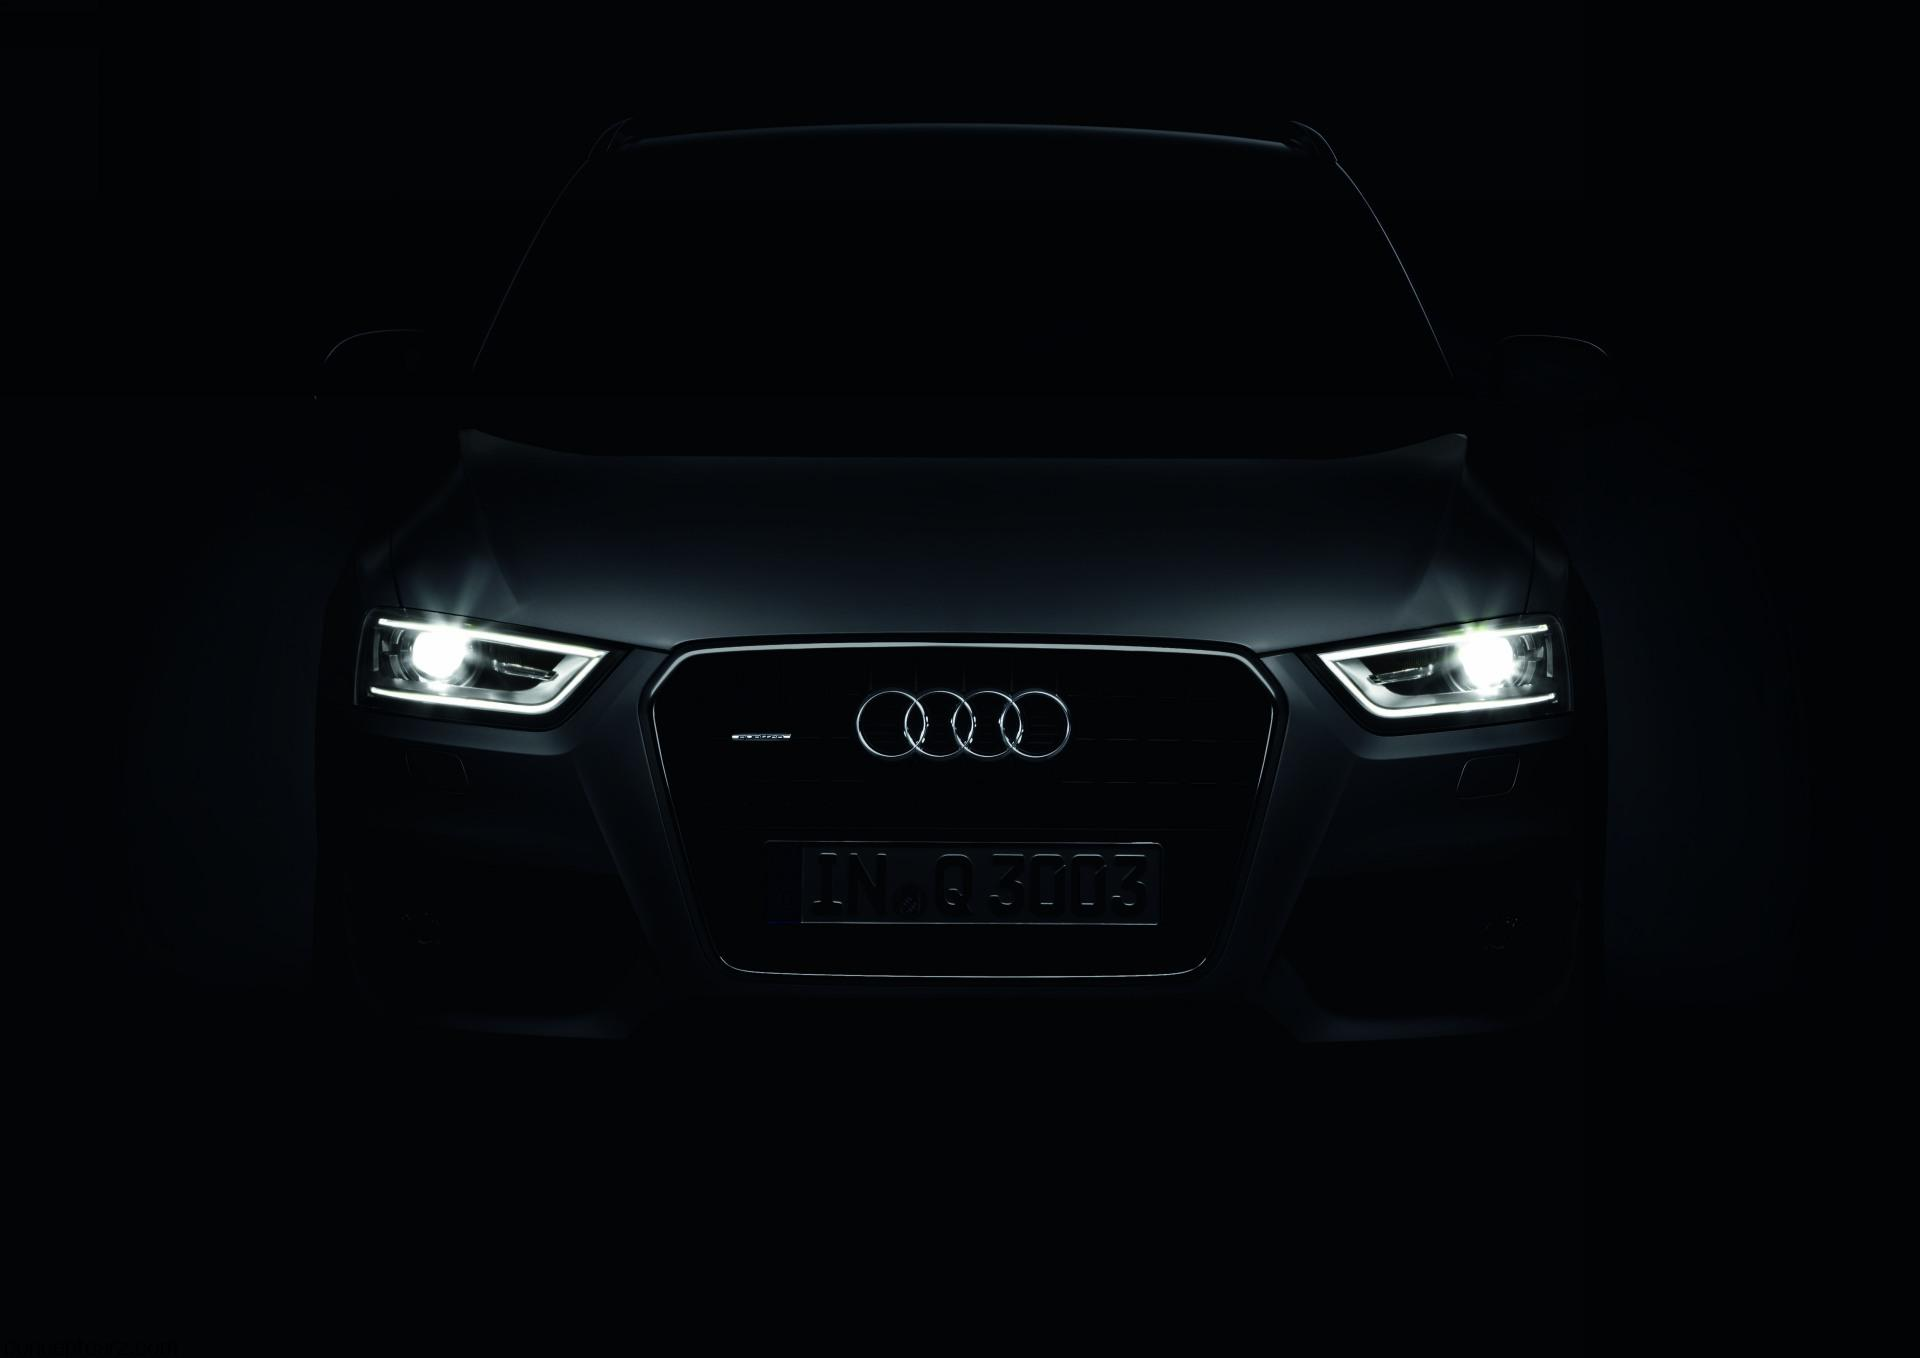 Audi a6 logo lighting led